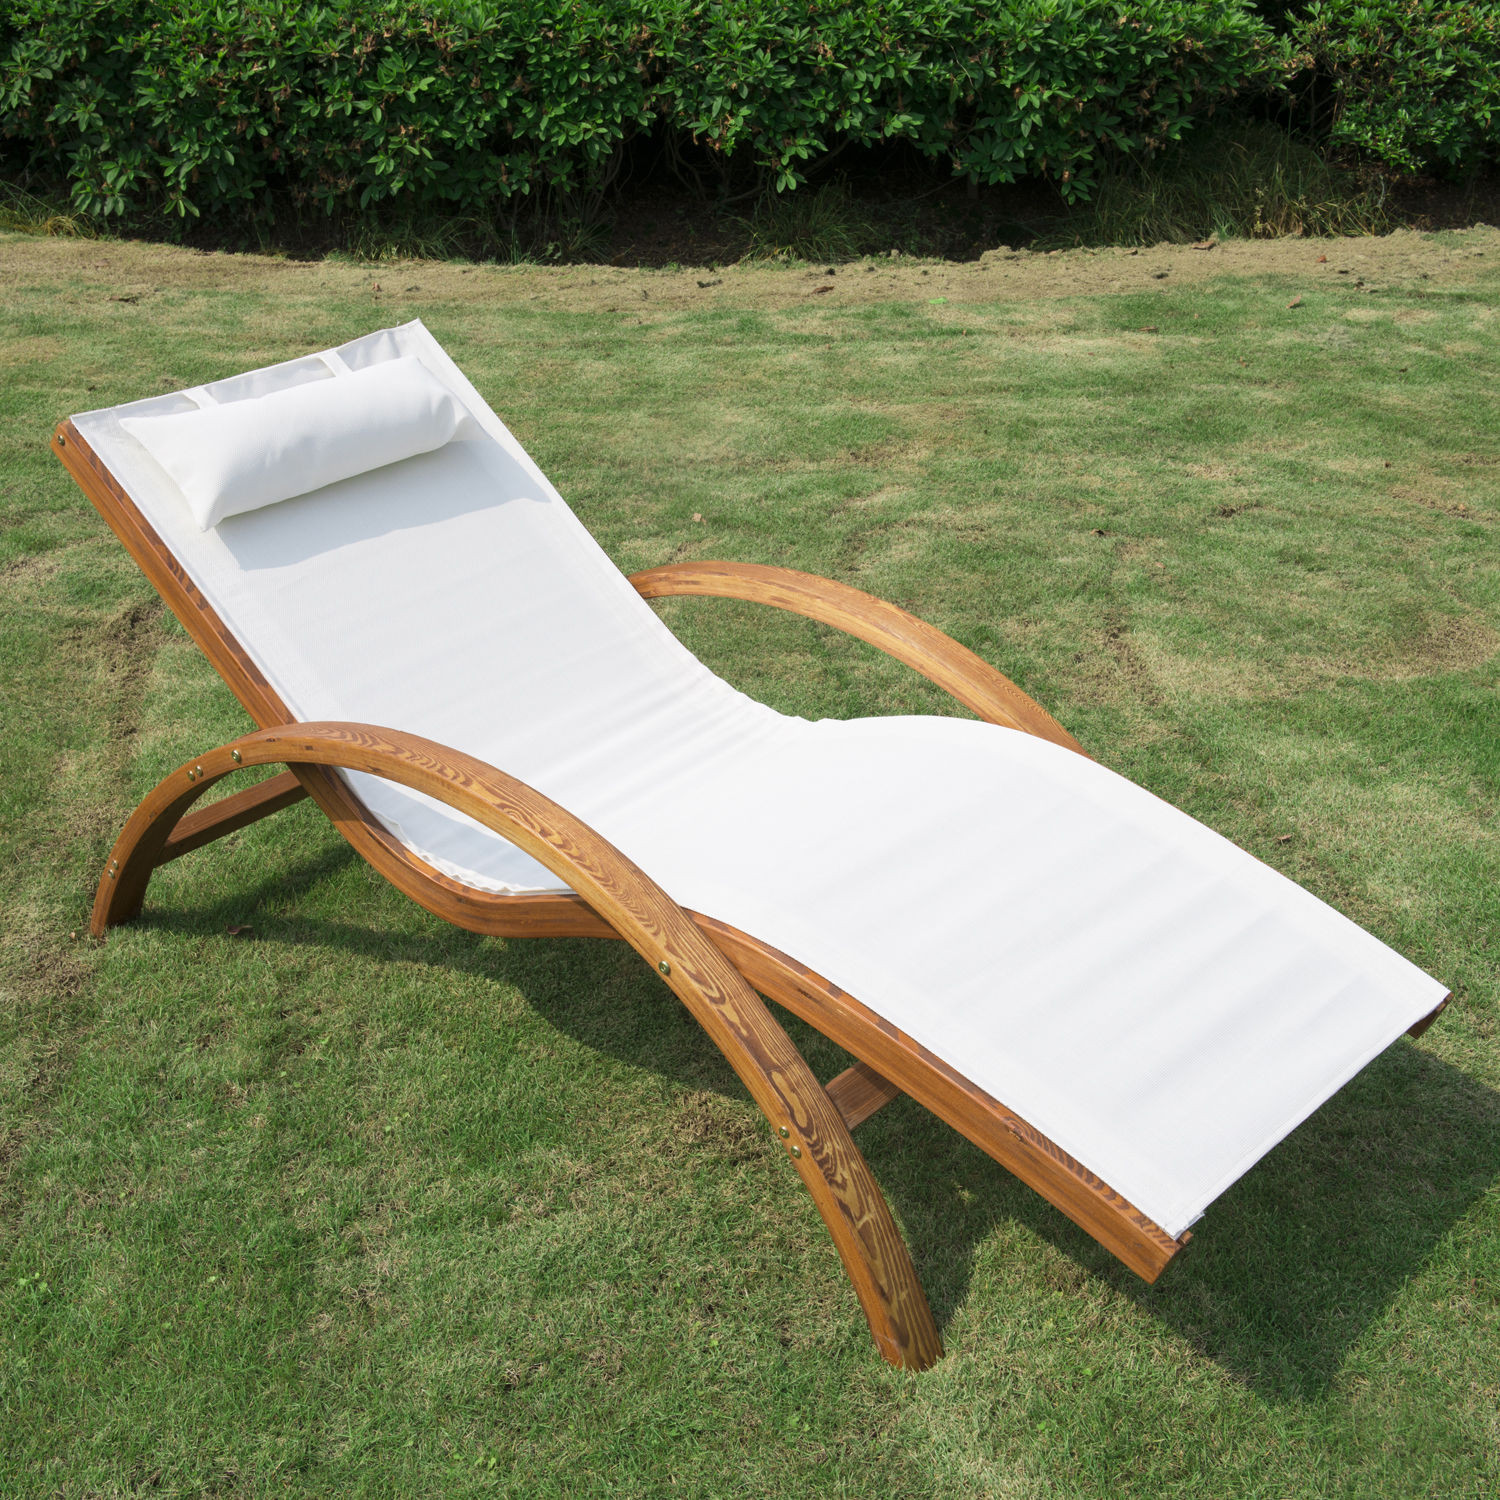 Best ideas about Outdoor Lounge Chairs . Save or Pin Wooden Patio Chaise Lounge Chair Outdoor Furniture Pool Now.